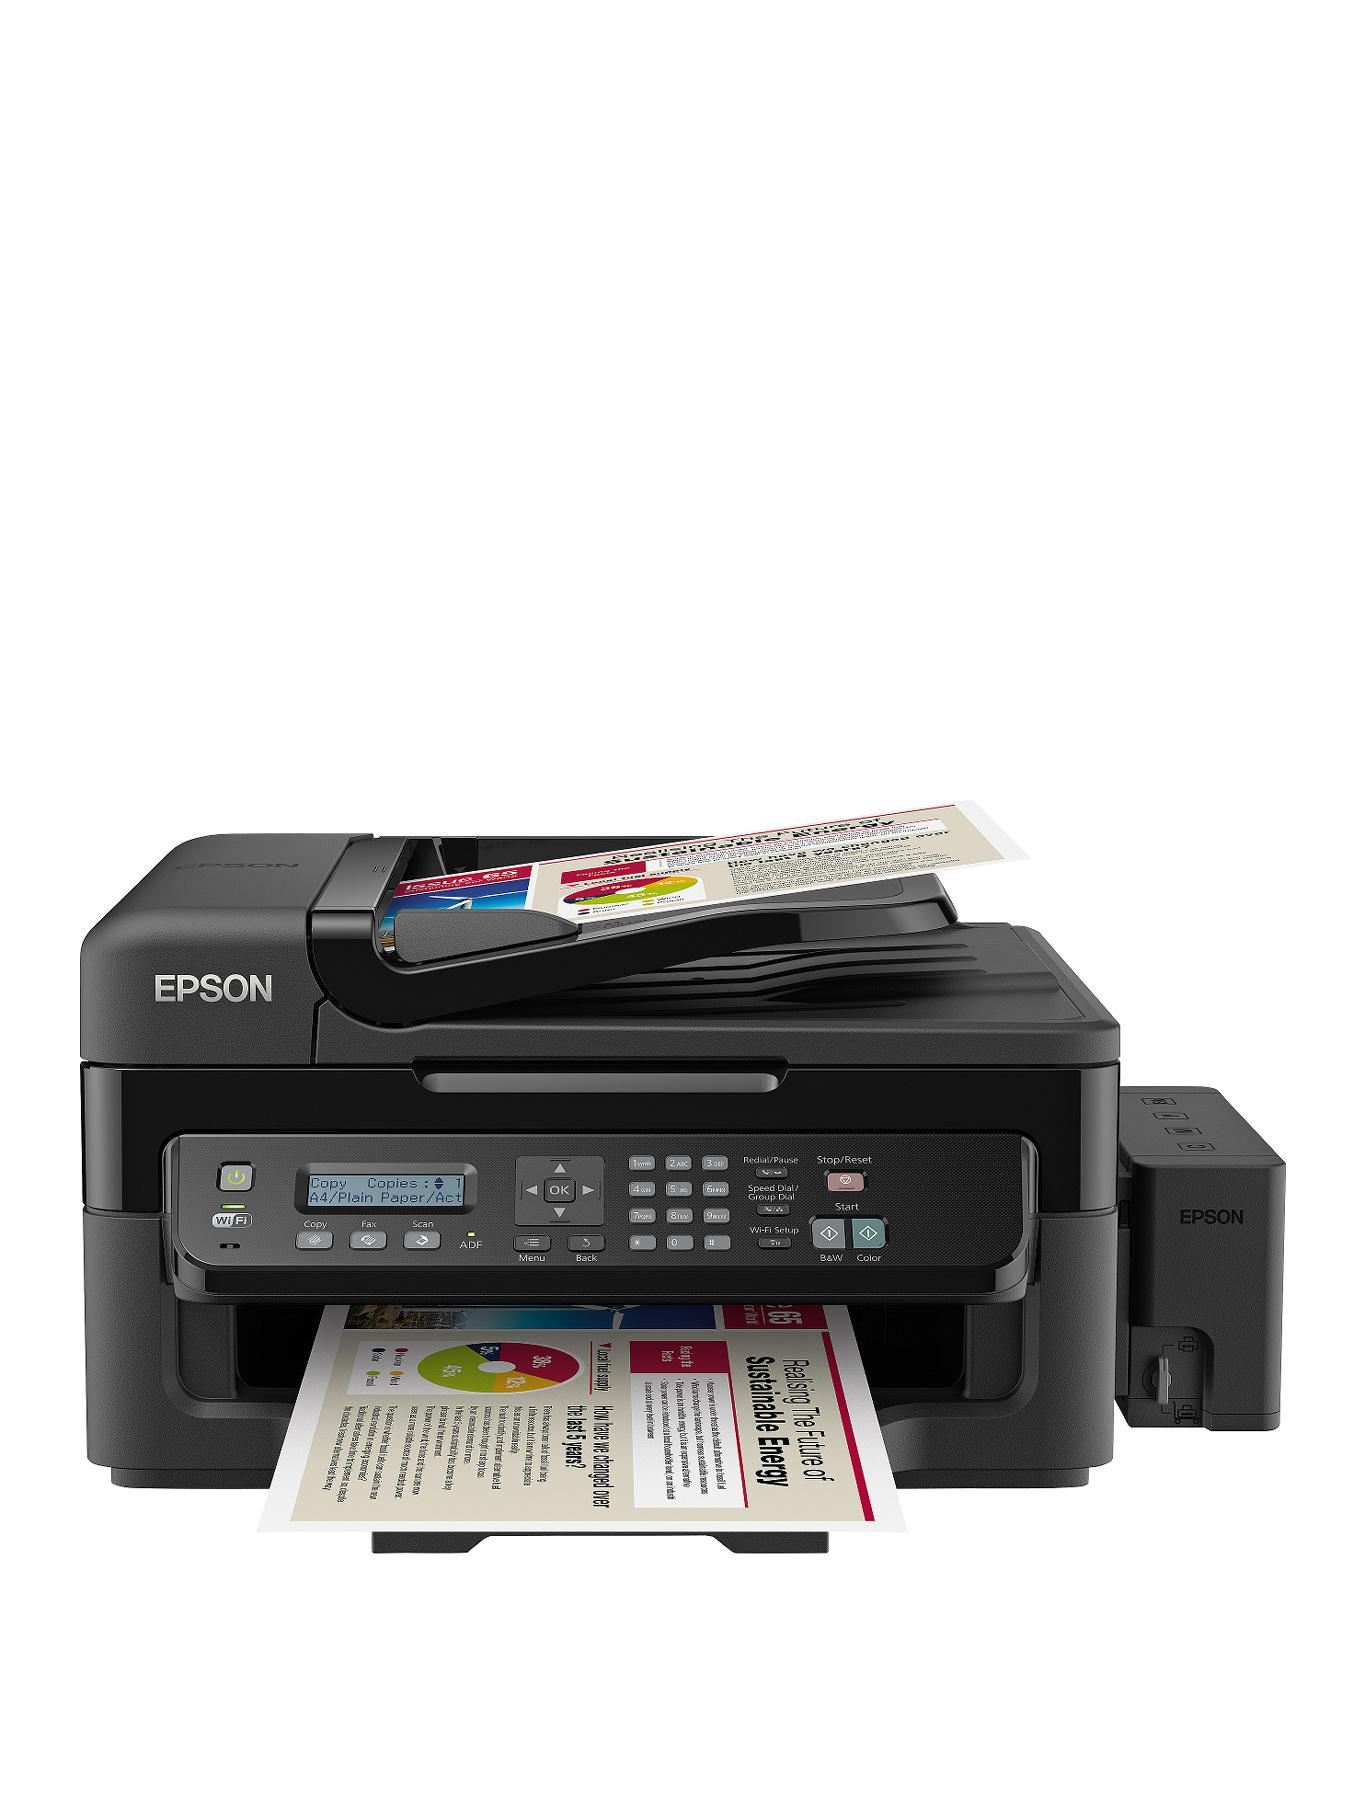 Epson ECO Tank L555 Wireless 4-in-1 Printer